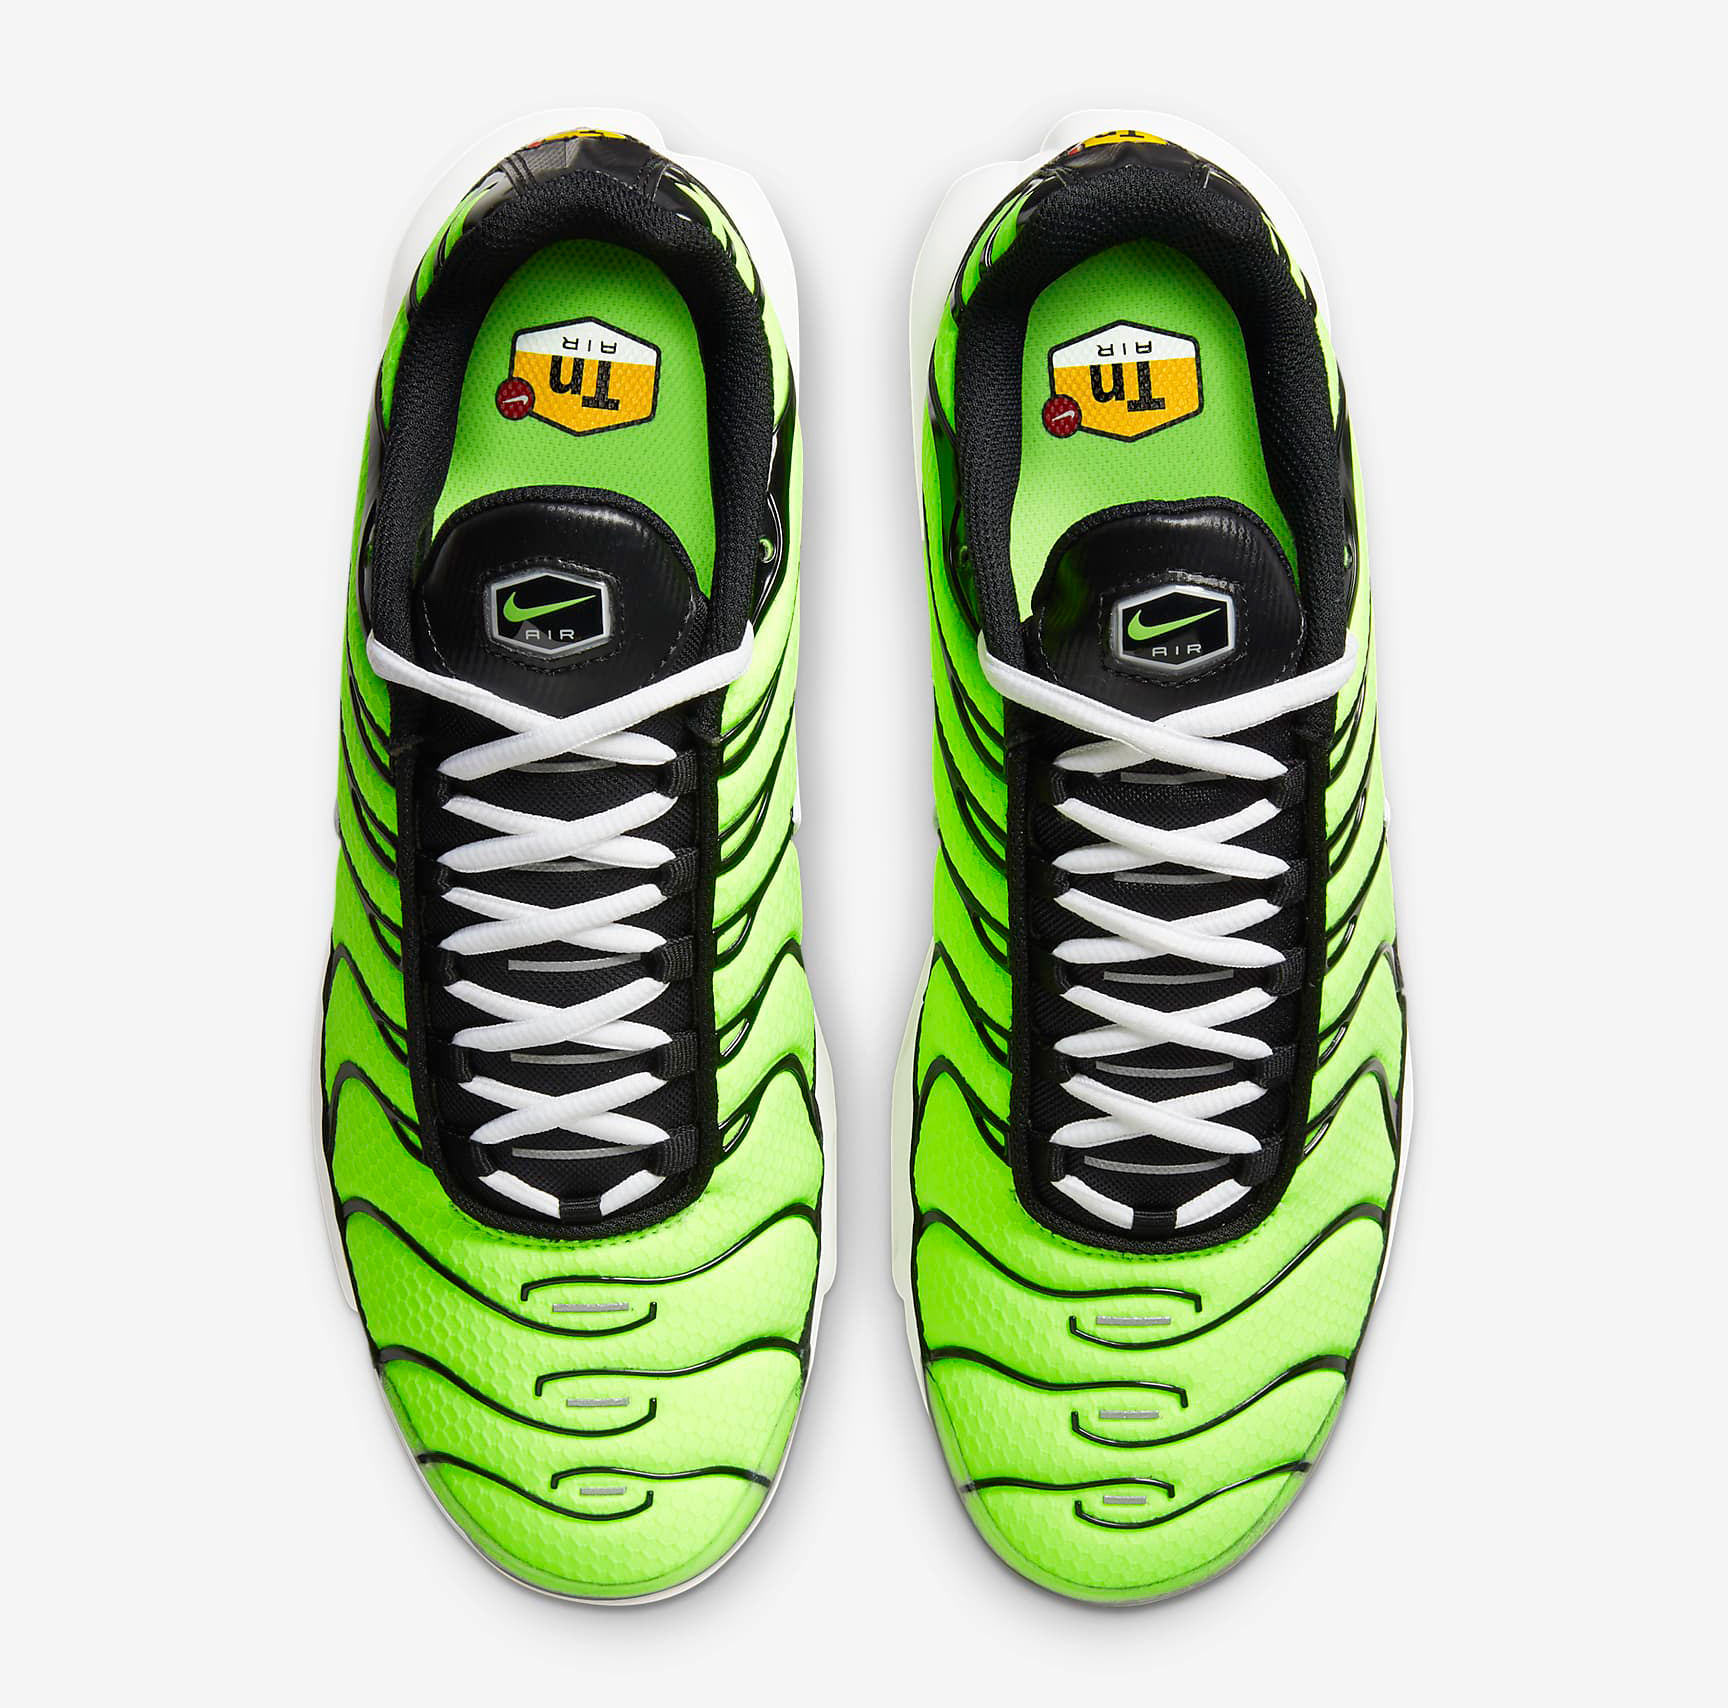 nike-air-max-plus-hot-lime-release-date-price-where-to-buy-4